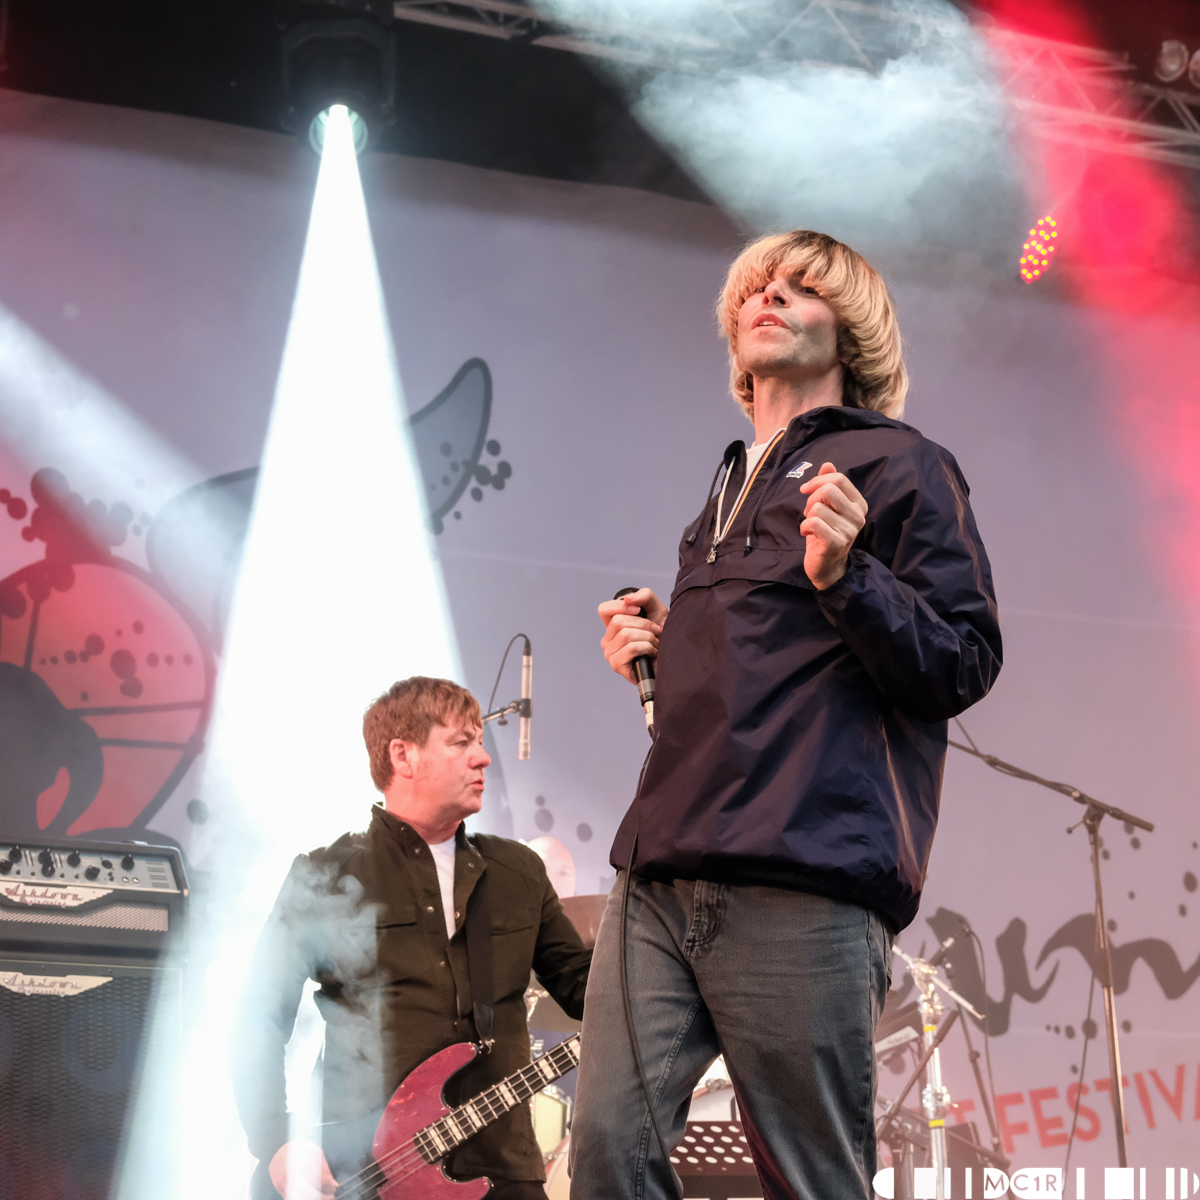 The Charlatans at Belladrum 2018 6 - The Charlatans, Friday Belladrum 2018 - IMAGES